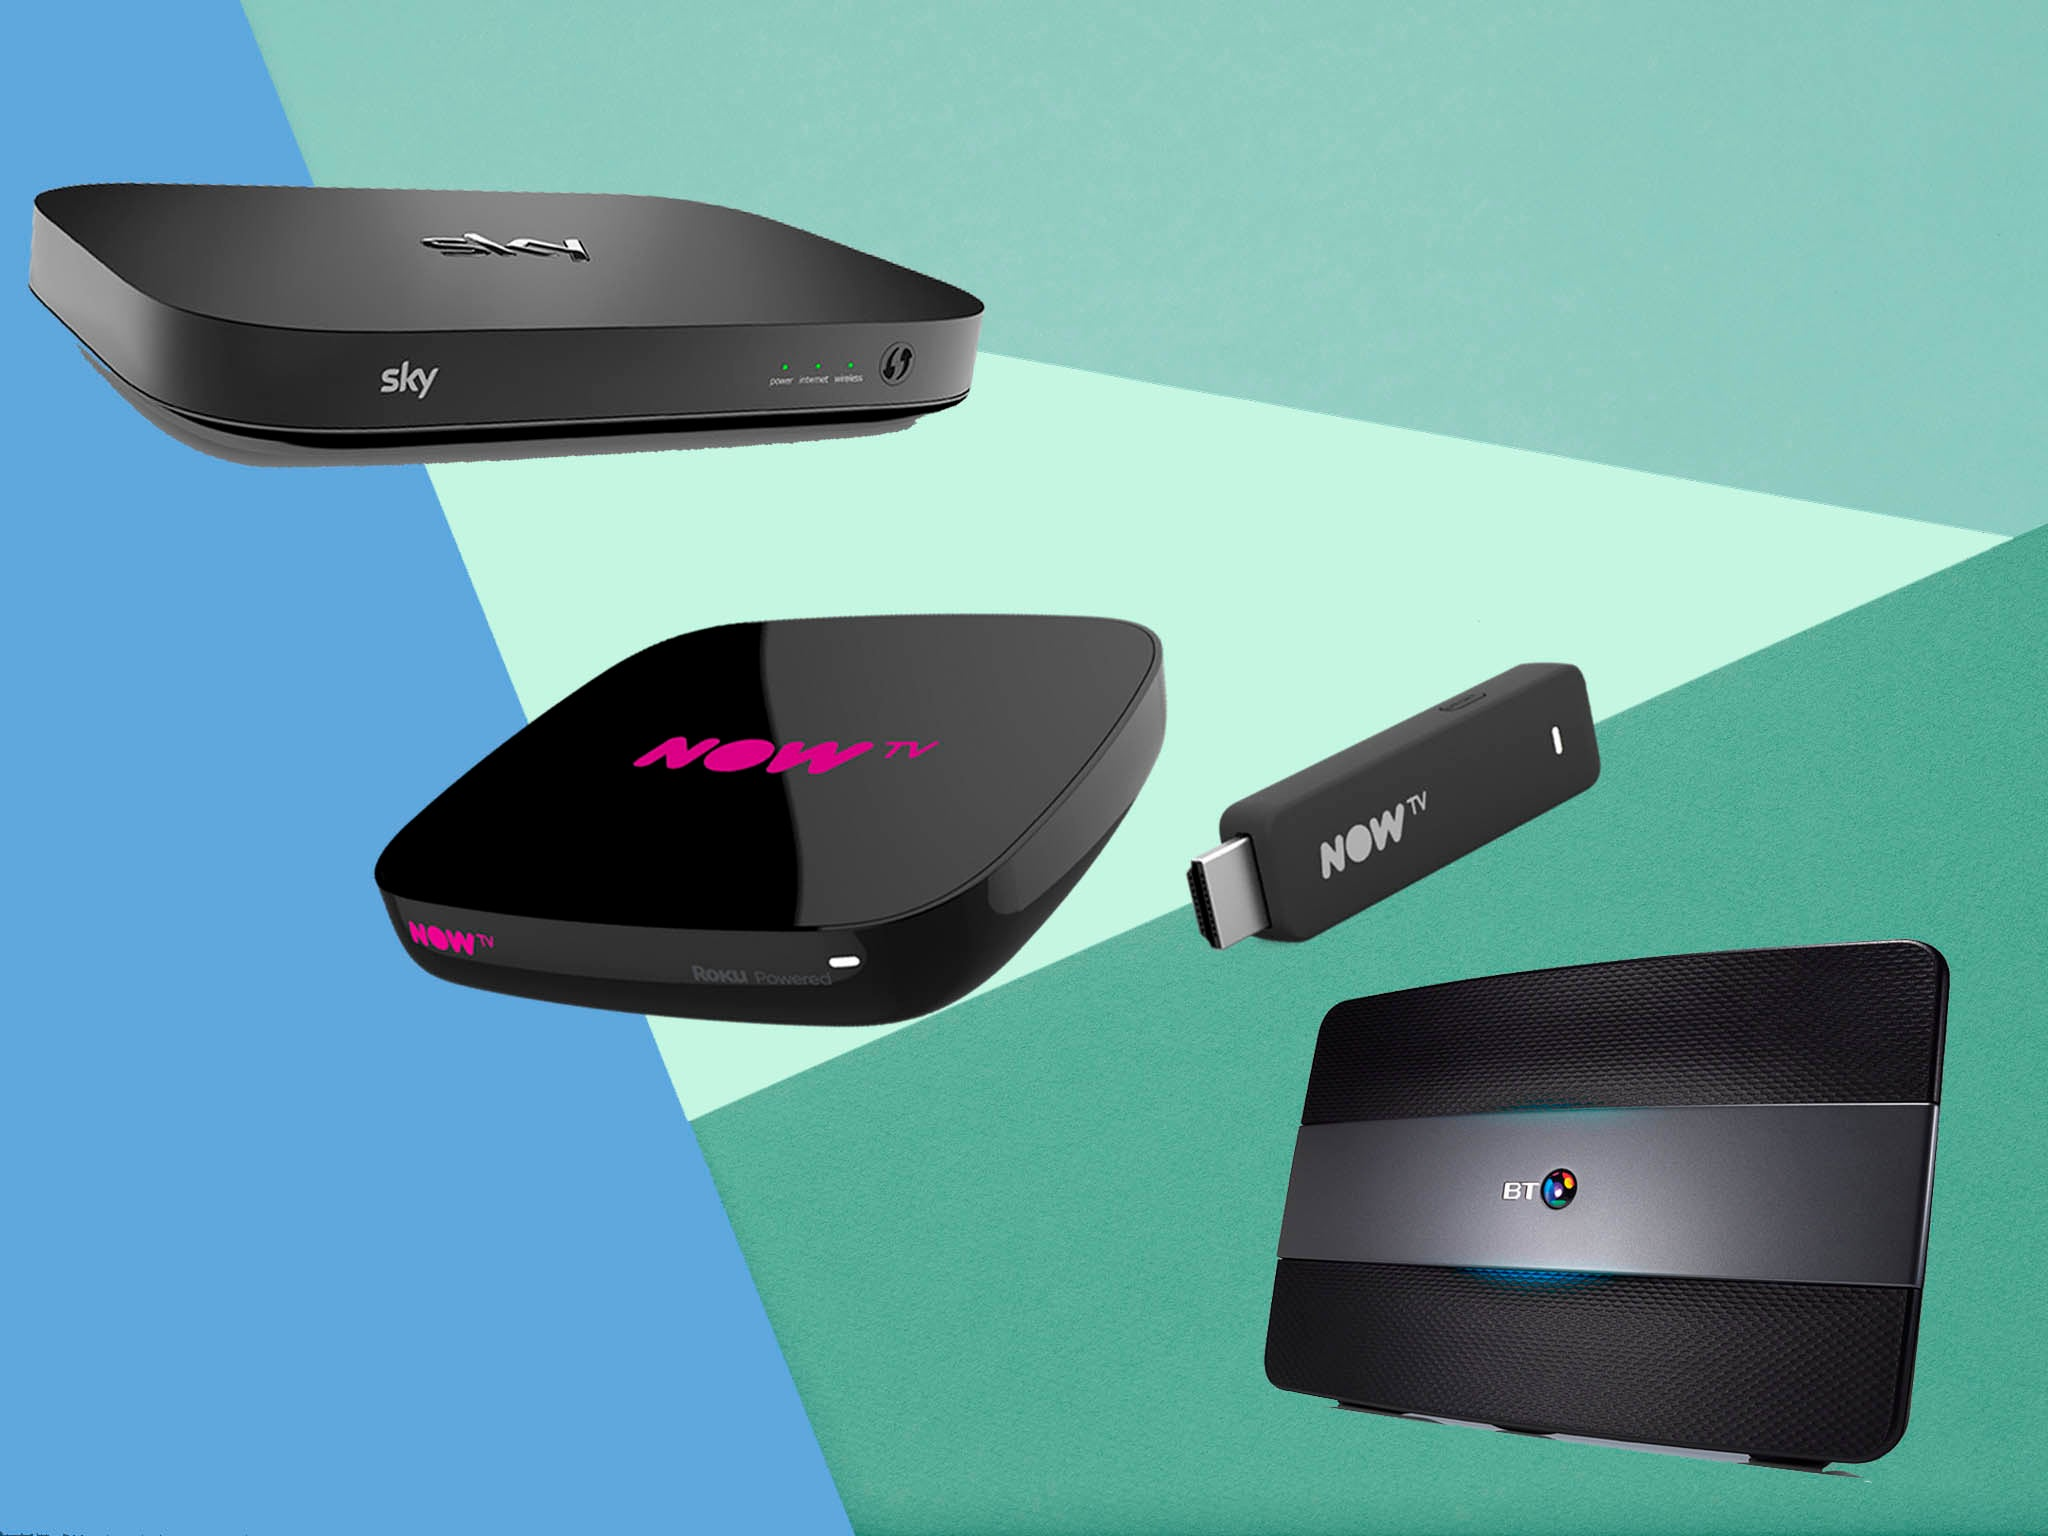 Cyber Monday Tv And Broadband Deals Best Offers From Ee